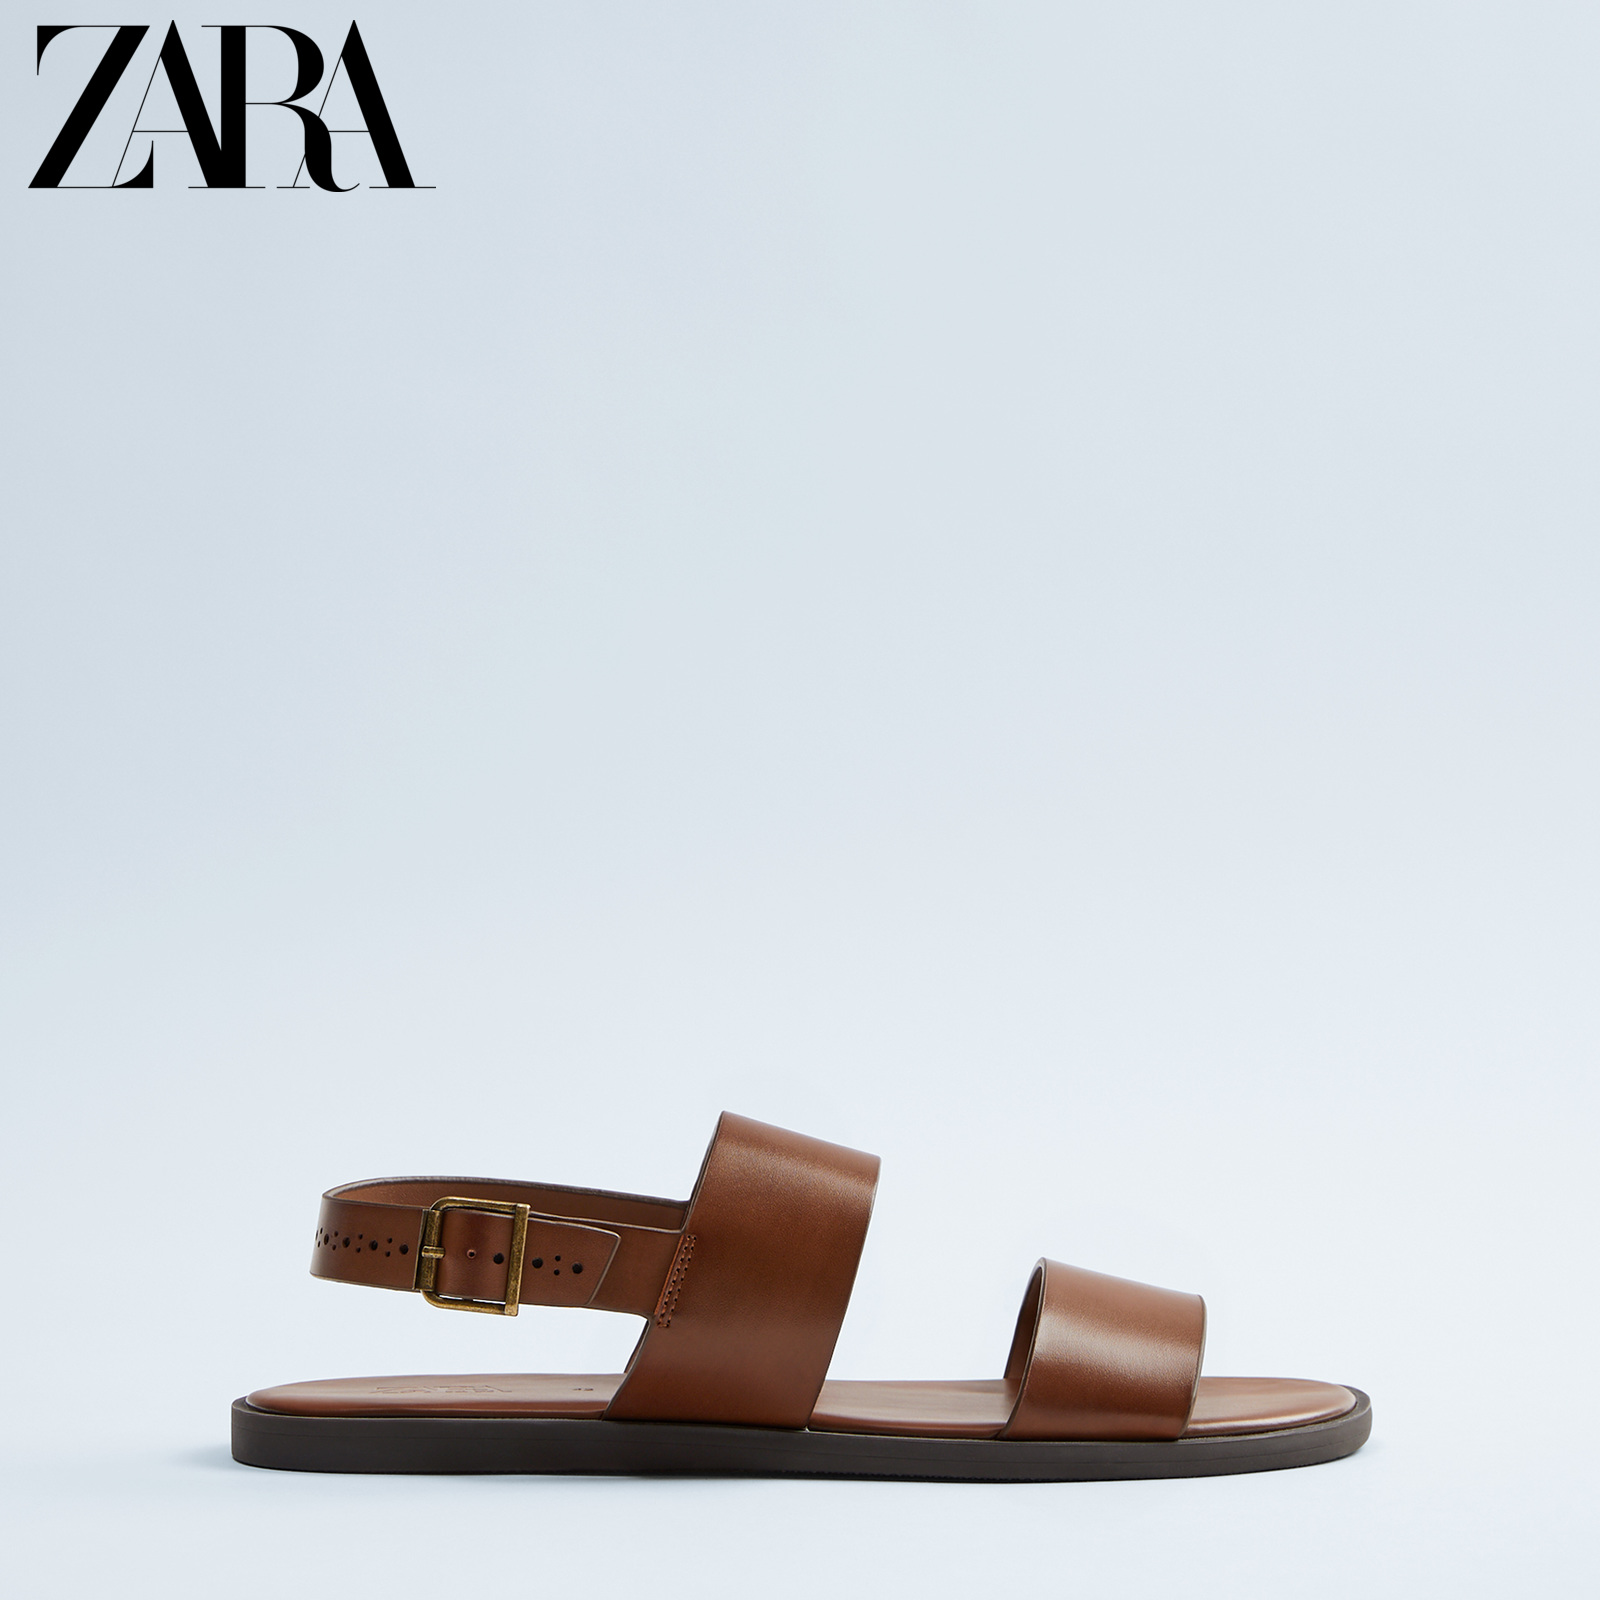 Zara new men's shoes brown buckle decoration Brown Sandals 12704521100